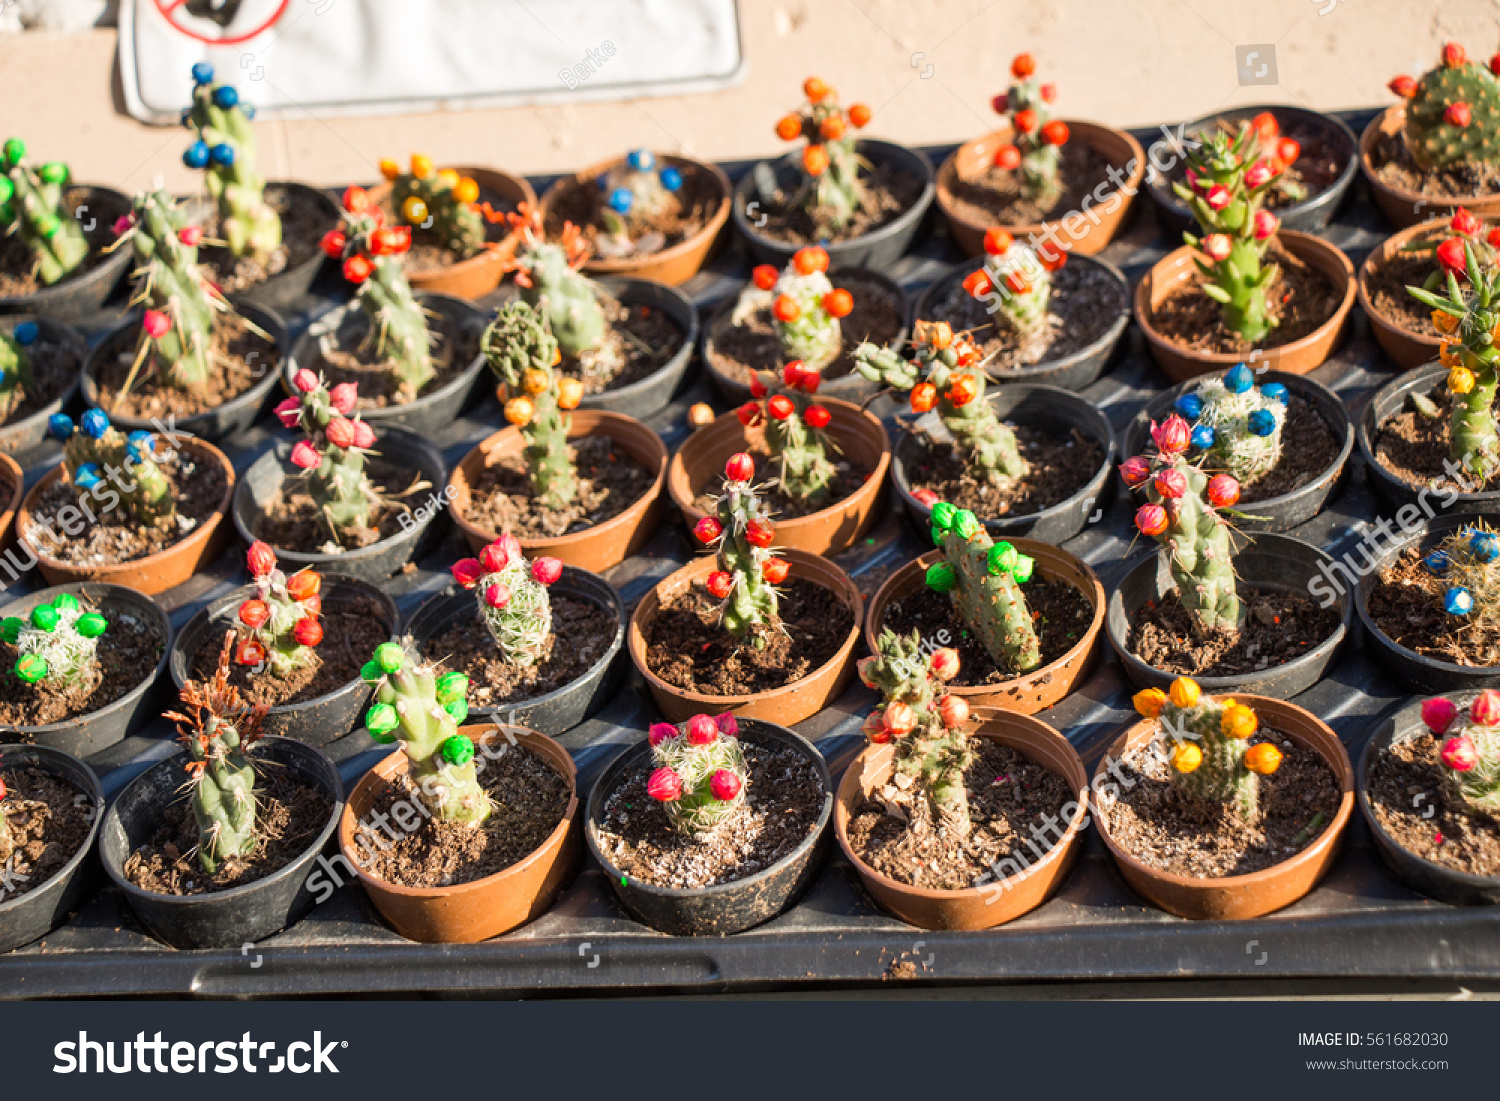 Little Colorful Cactus Small Pot Garden Stock Photo (Royalty Free ...